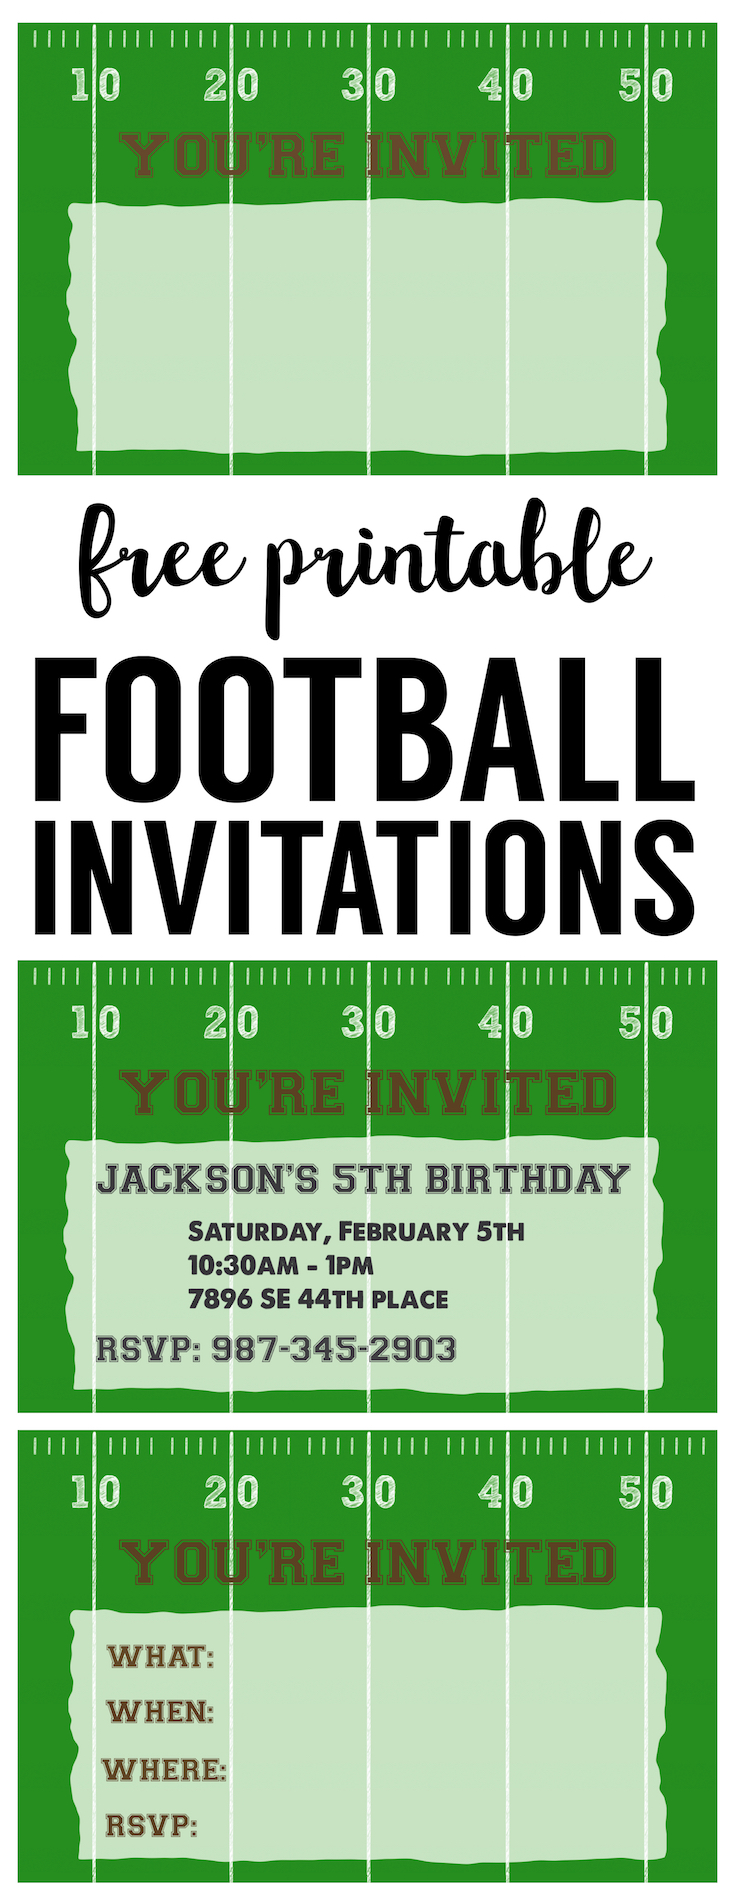 It is an image of Amazing Super Bowl Party Invitations Free Printable